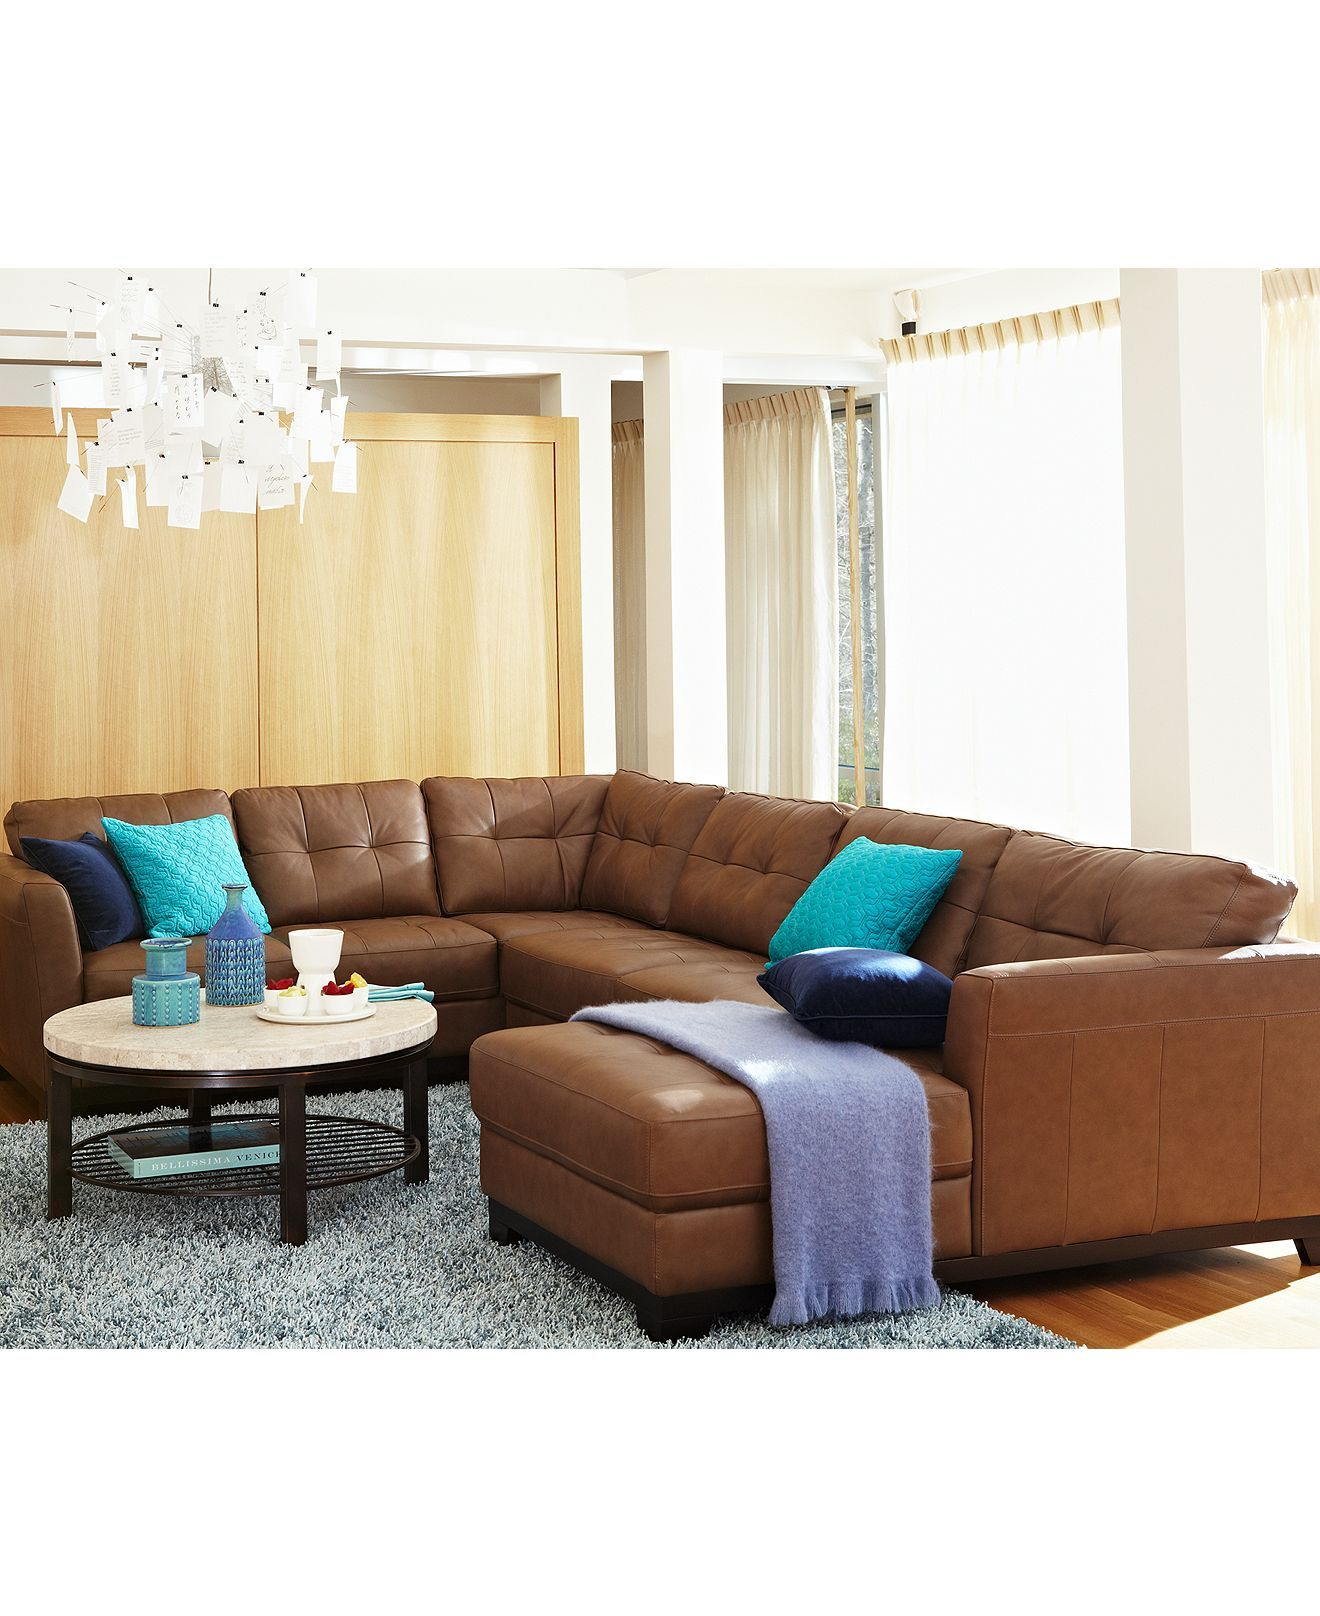 Martino Leather Sectional Living Room Furniture Sets